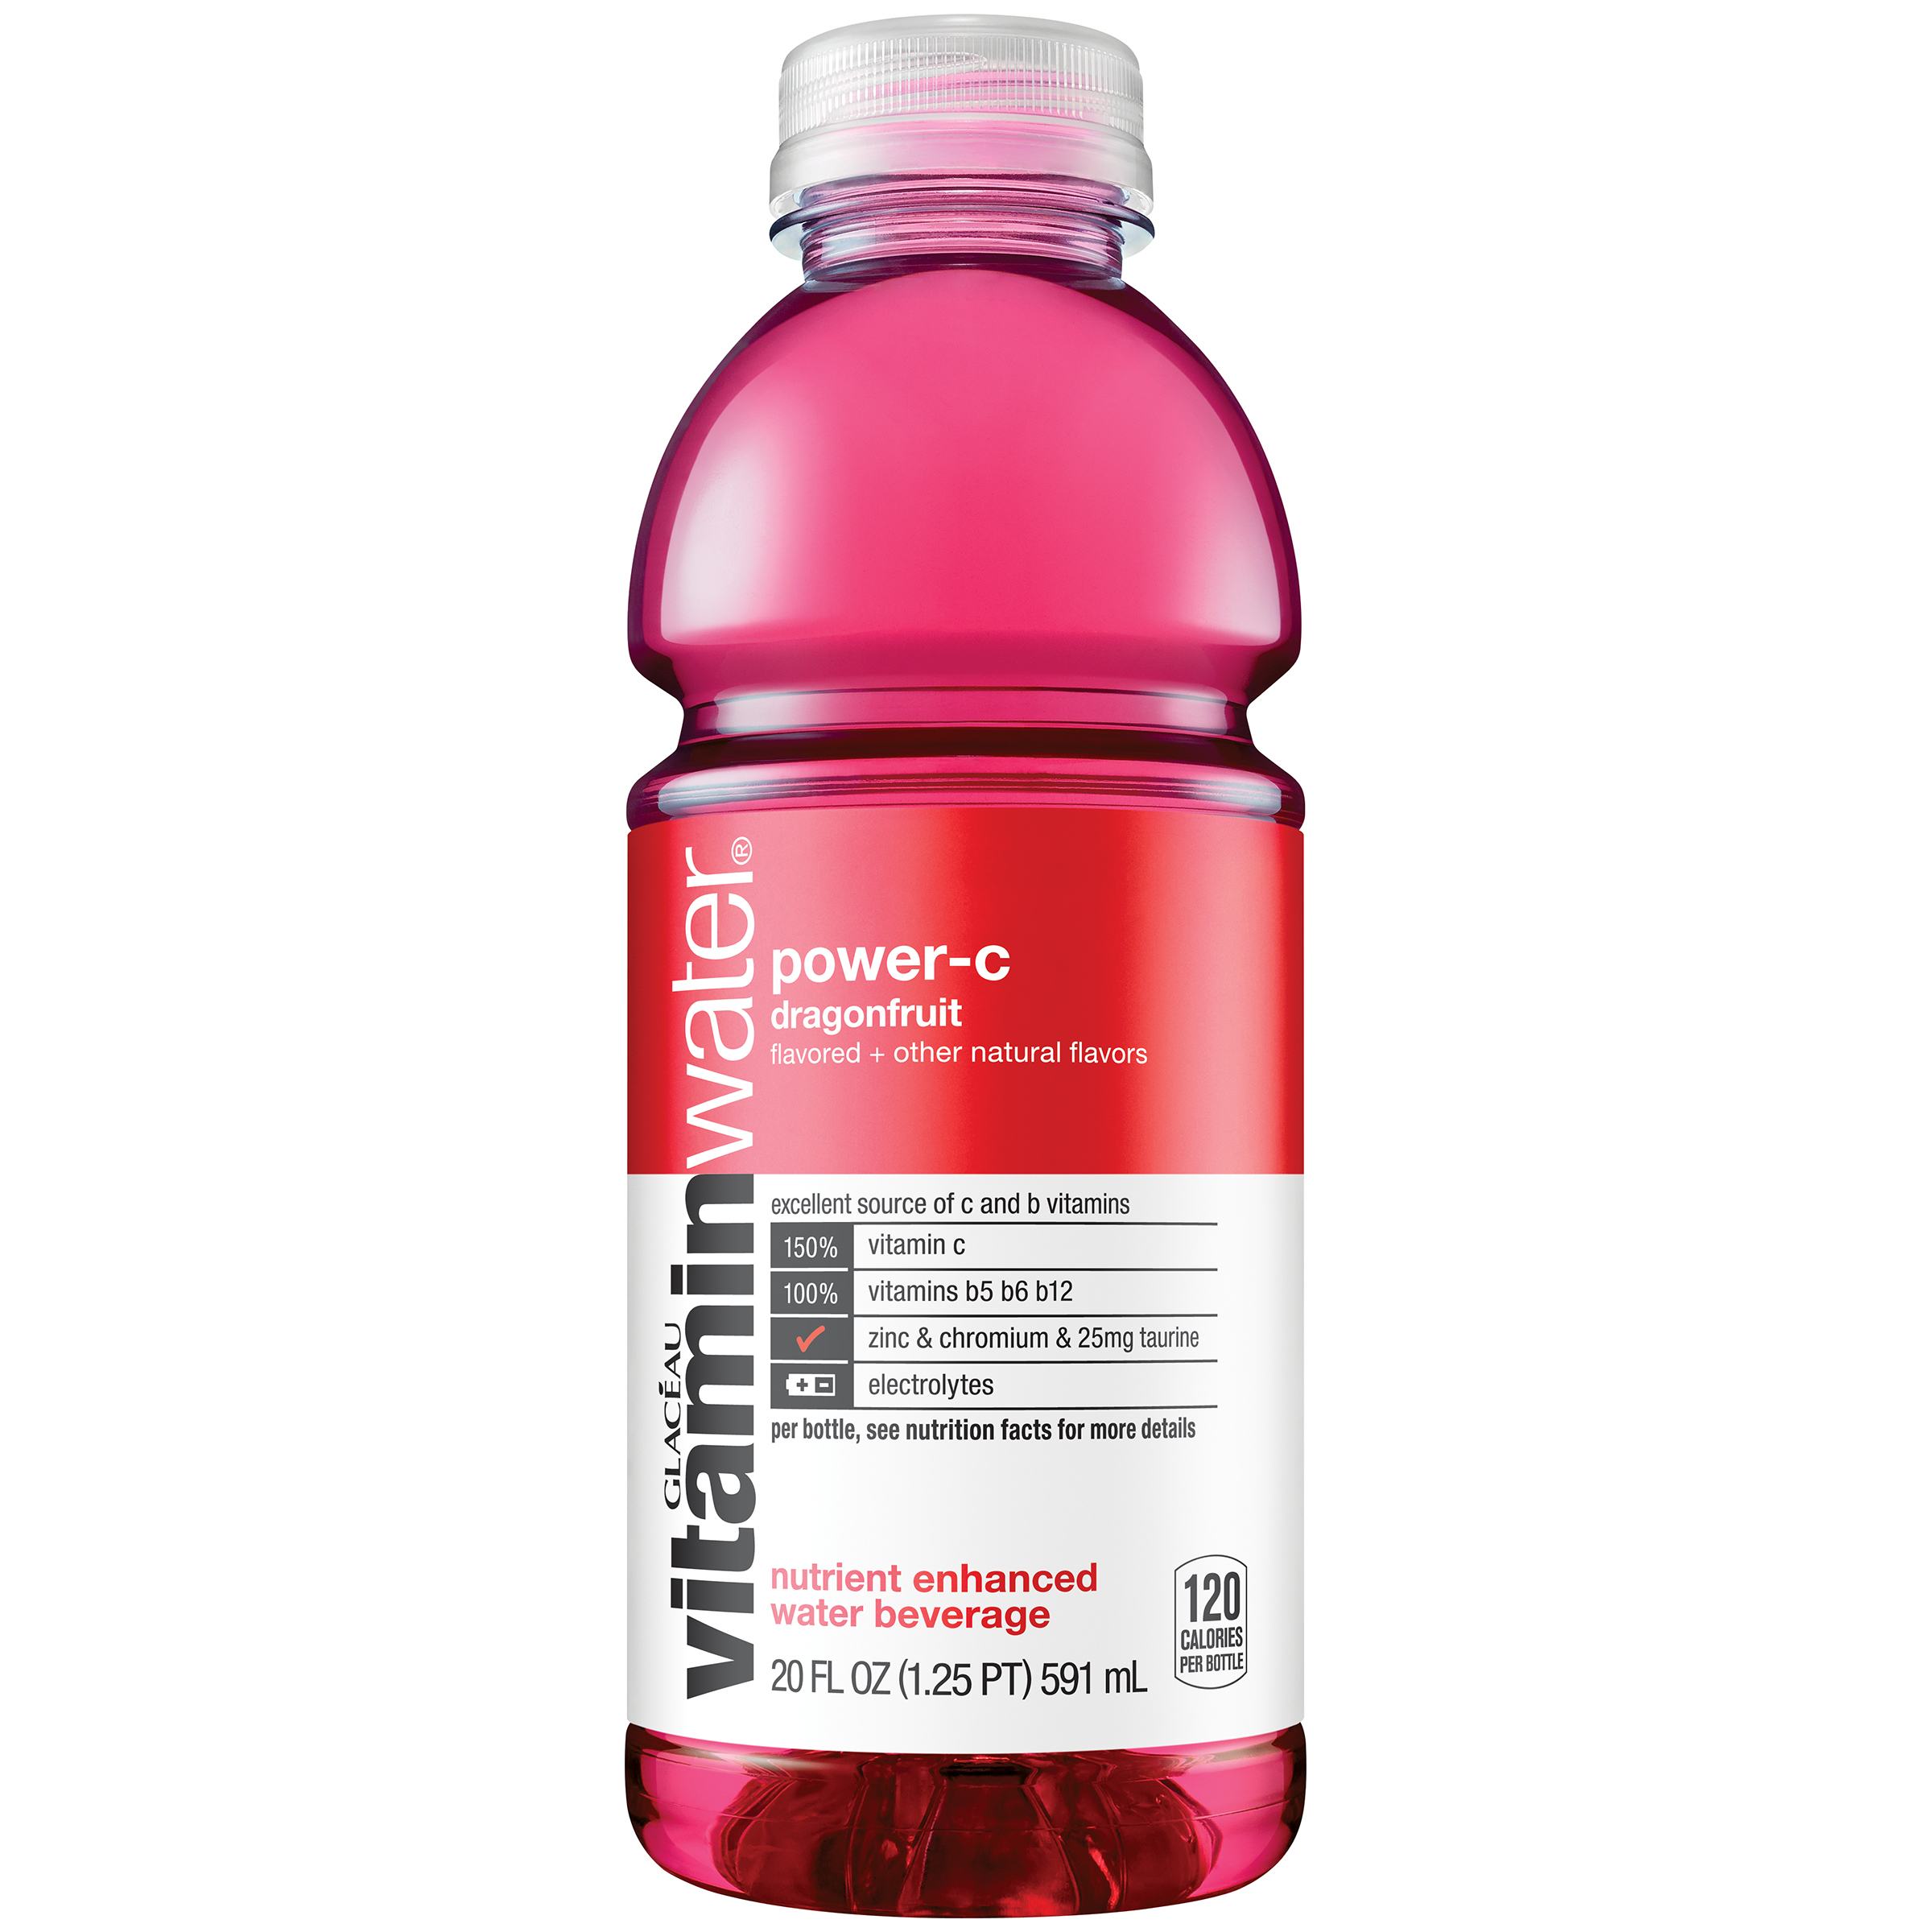 vitaminwater power-c, Dragonfruit, 20 fl oz